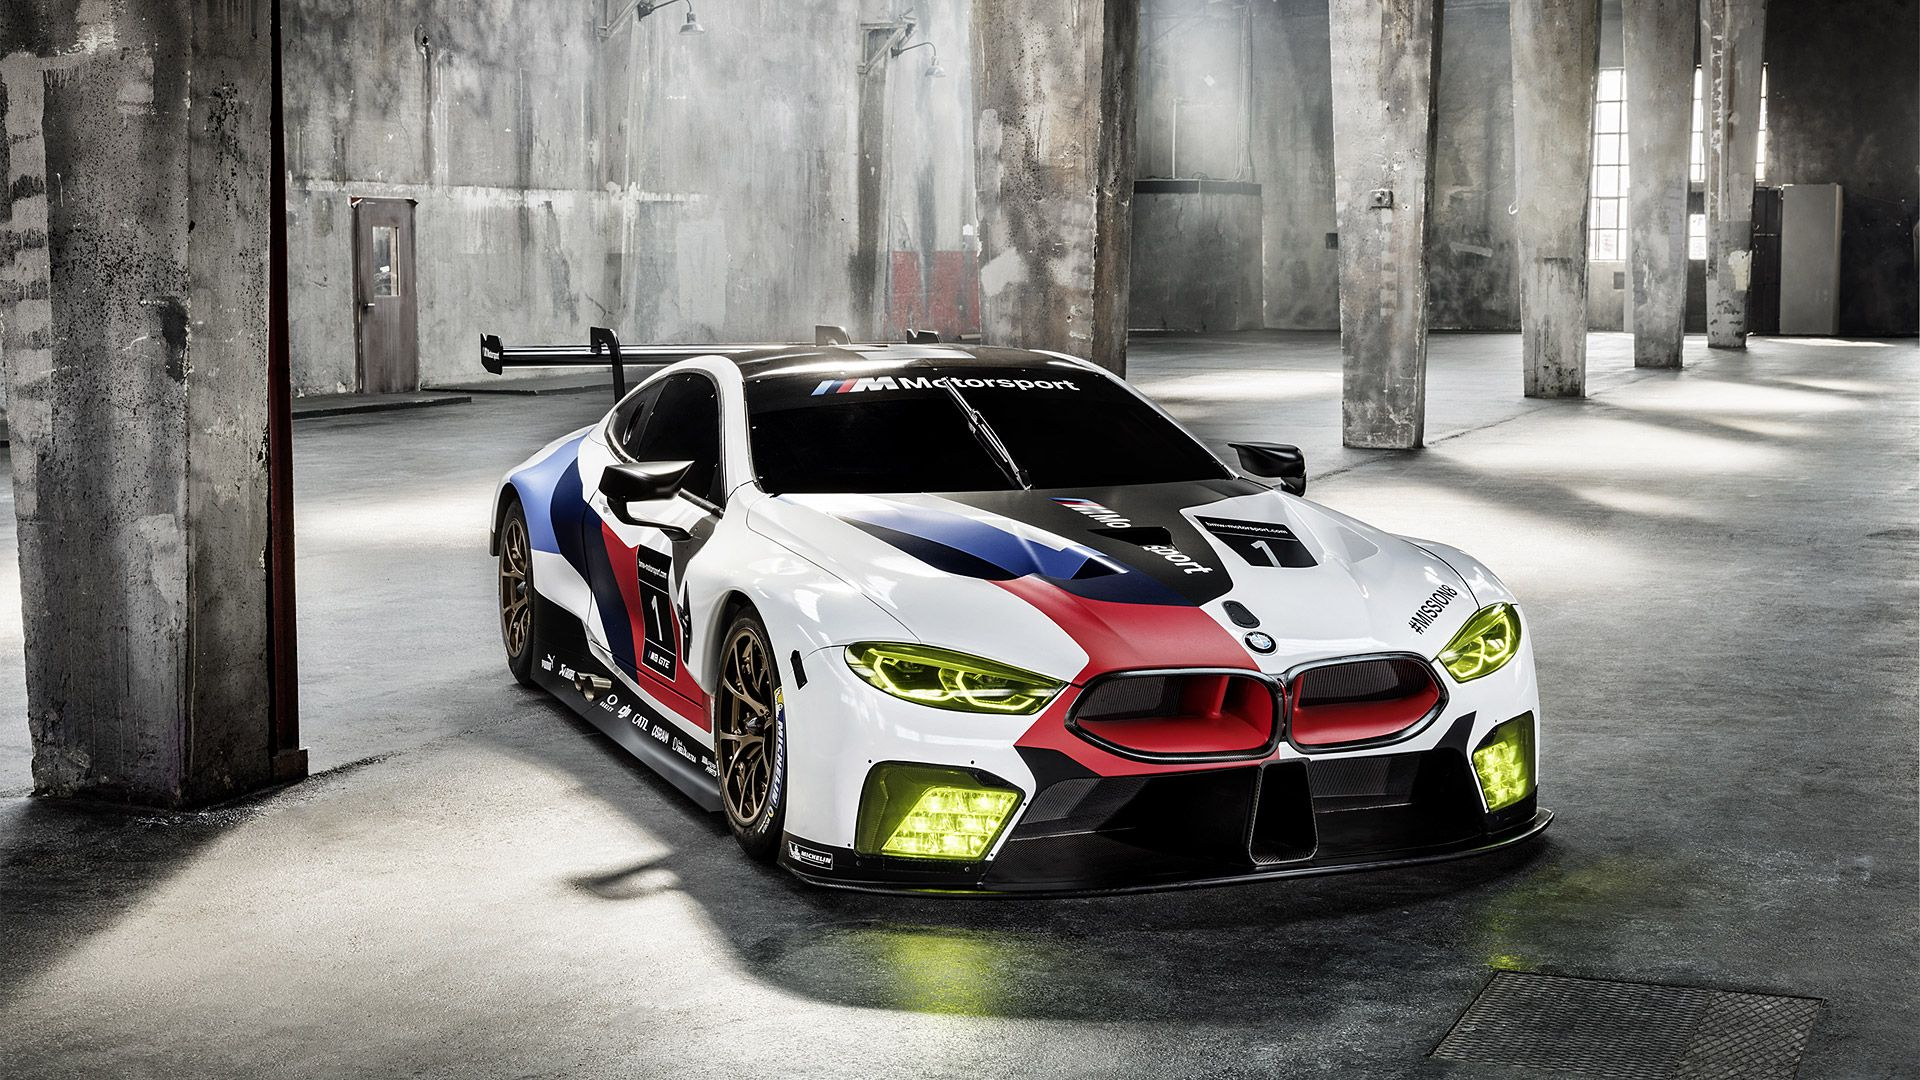 2018 Bmw M8 Gte With Images Cool Sports Cars Race Cars Car